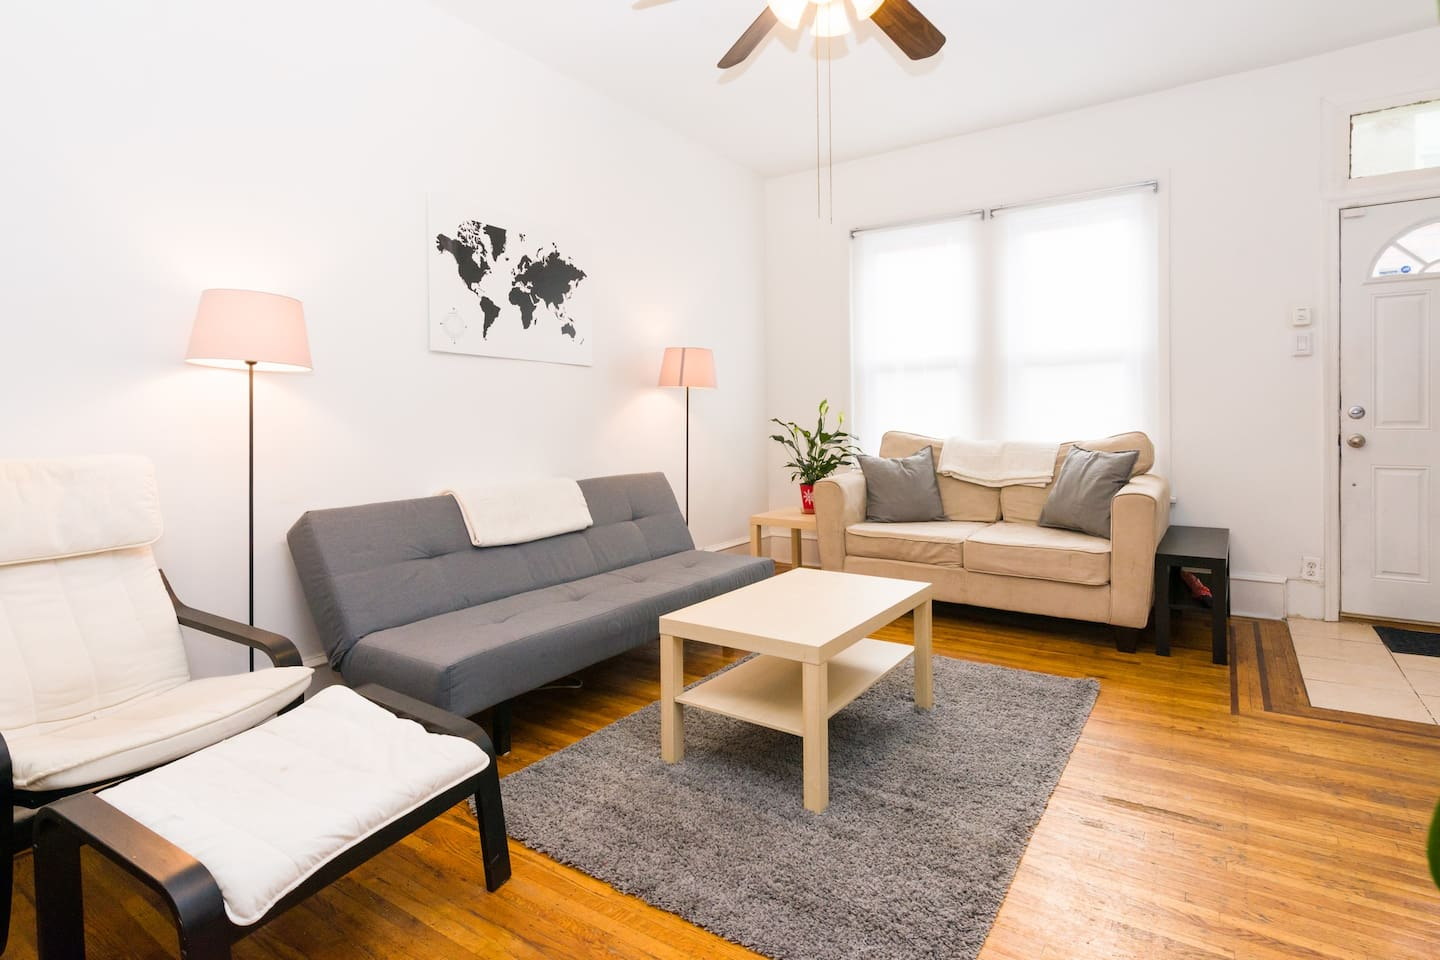 Full/private home by cheesesteaks in hip S. Philly